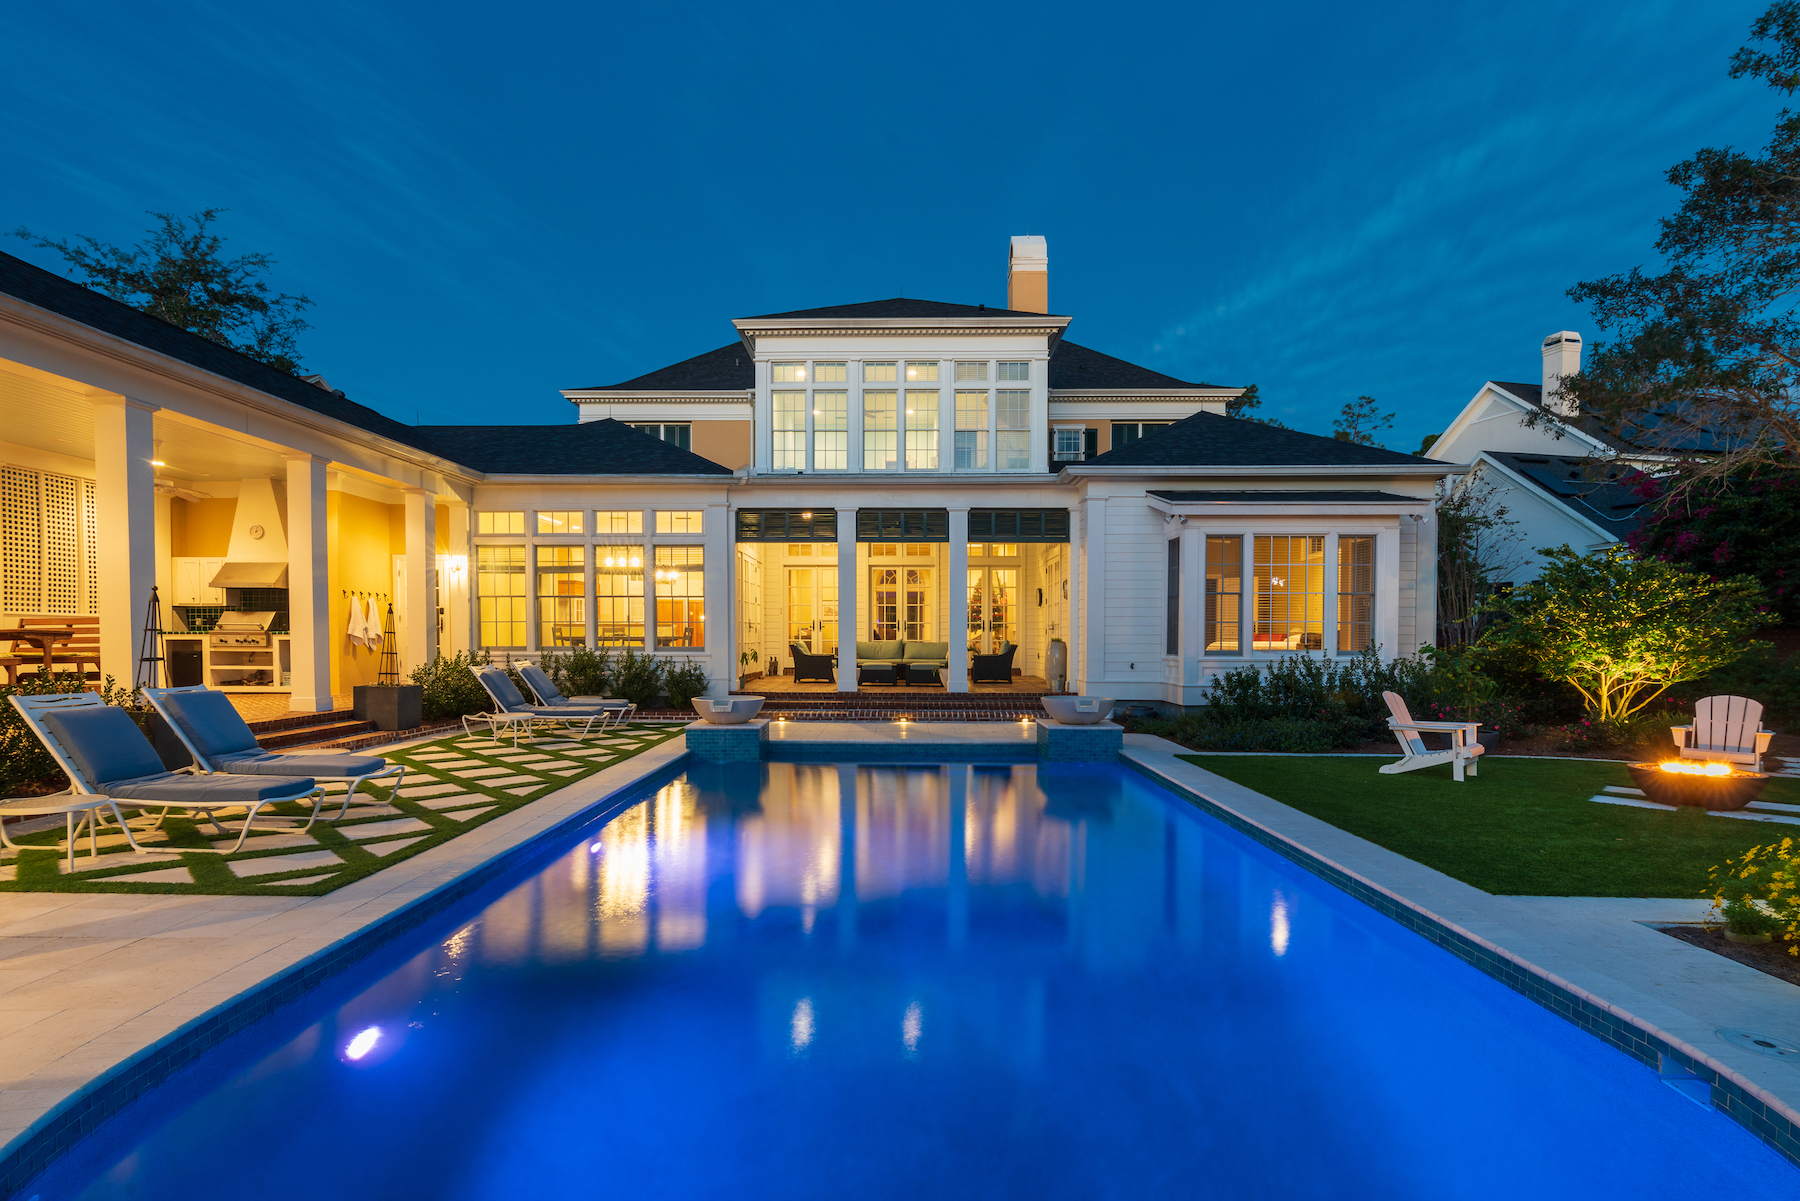 Serene backyard with artificial turf, pool and patio